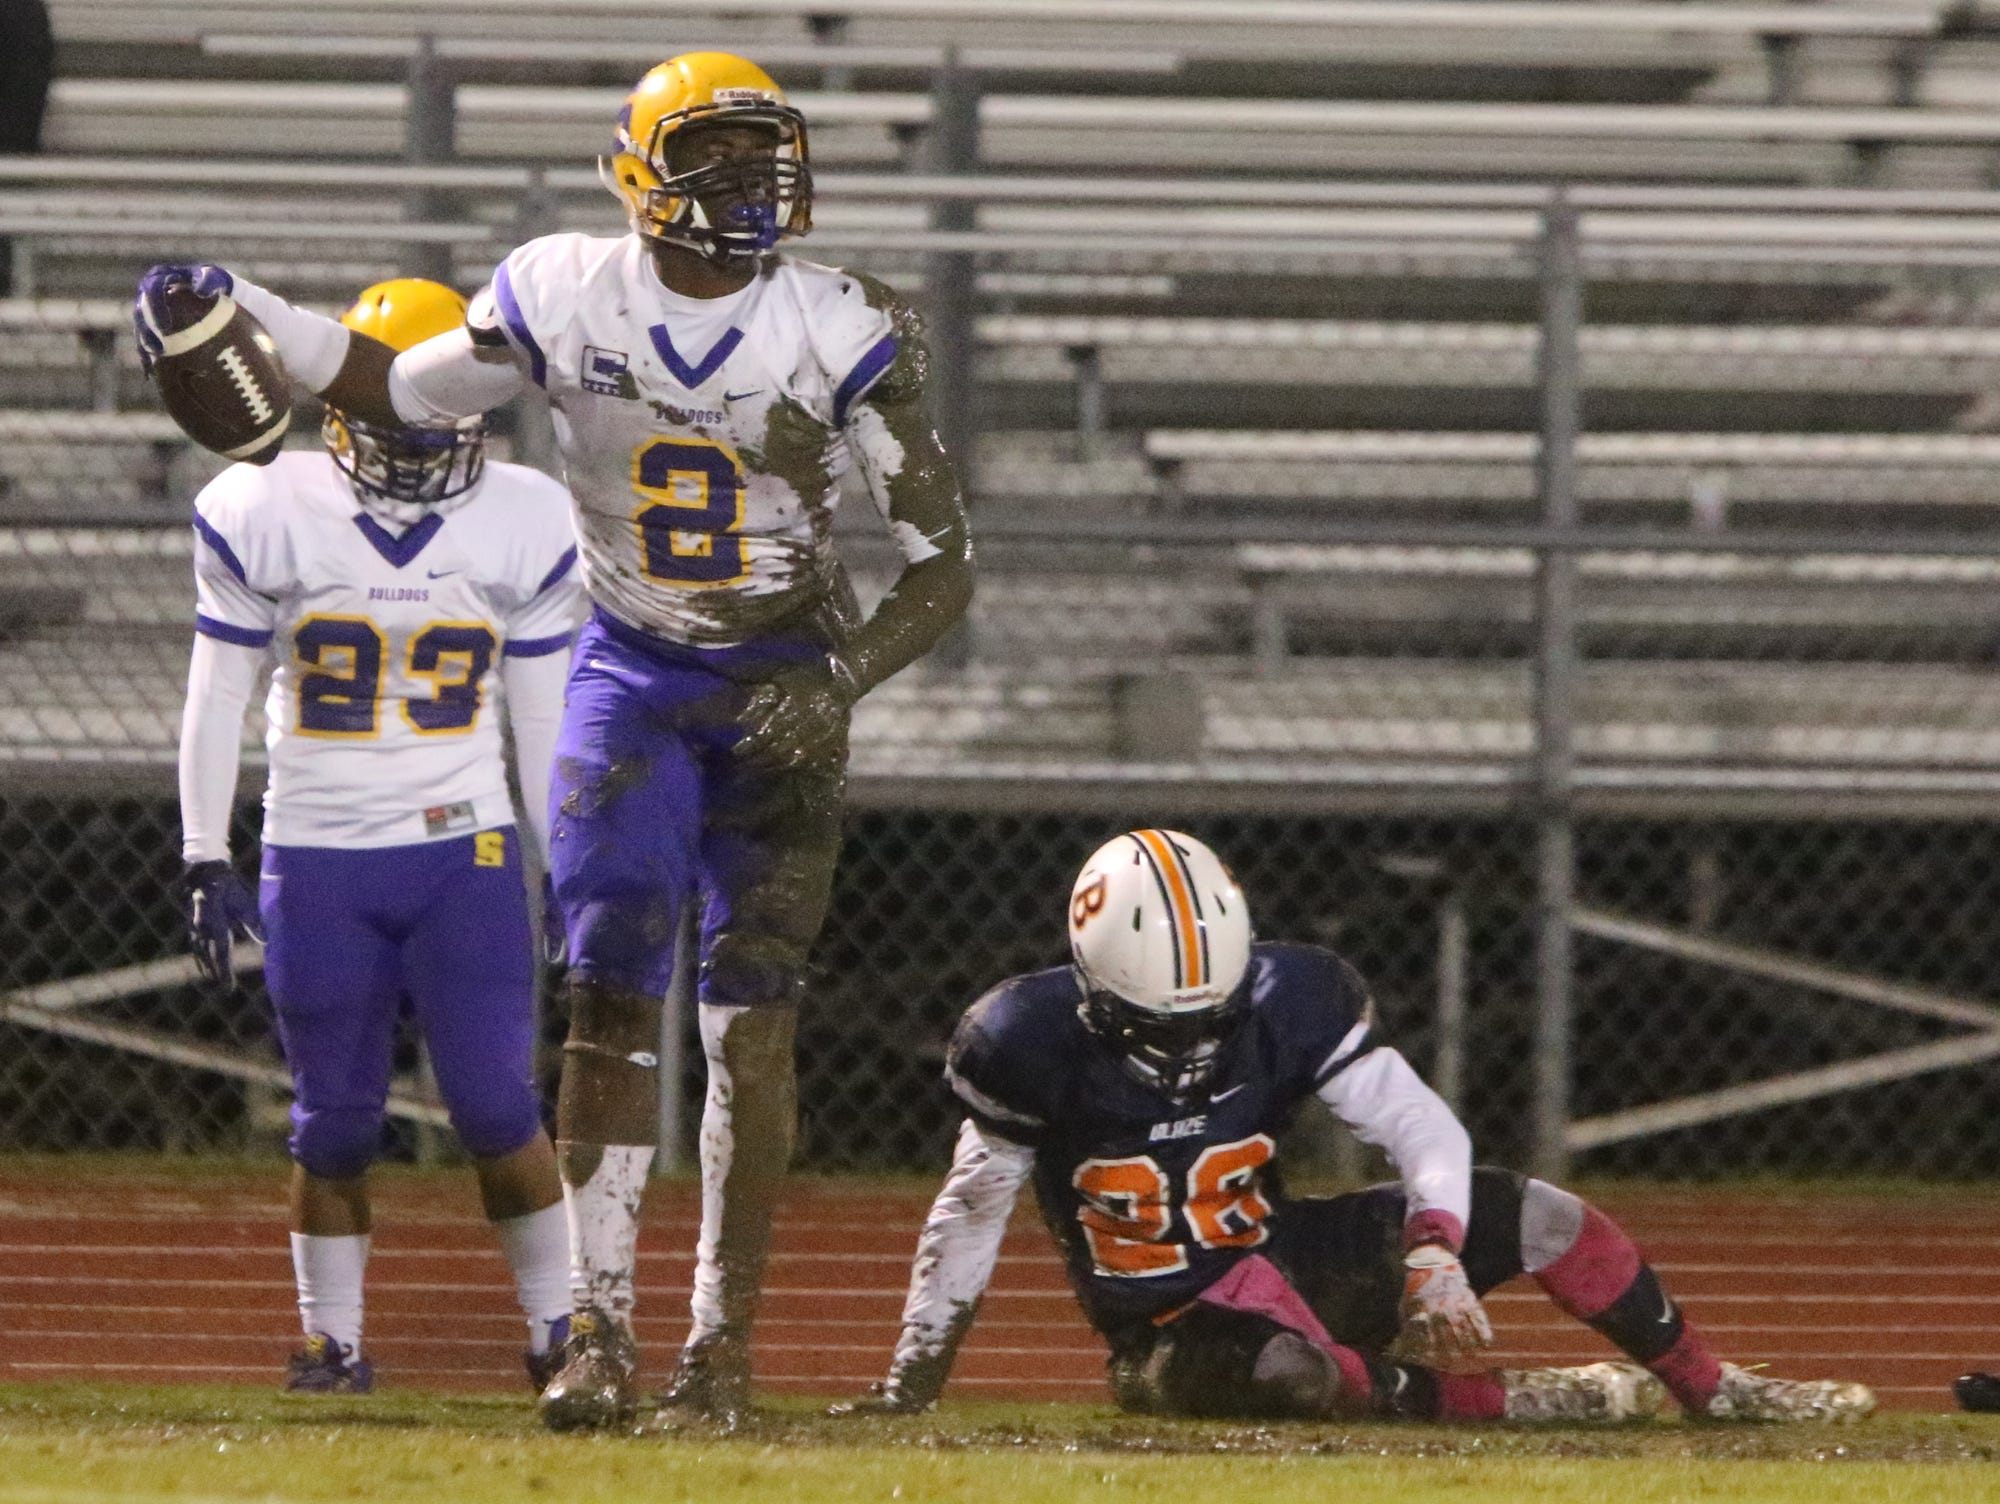 Blackman wins their homecoming game over Smyrna 28-7, on Friday Oct 2, 2015.